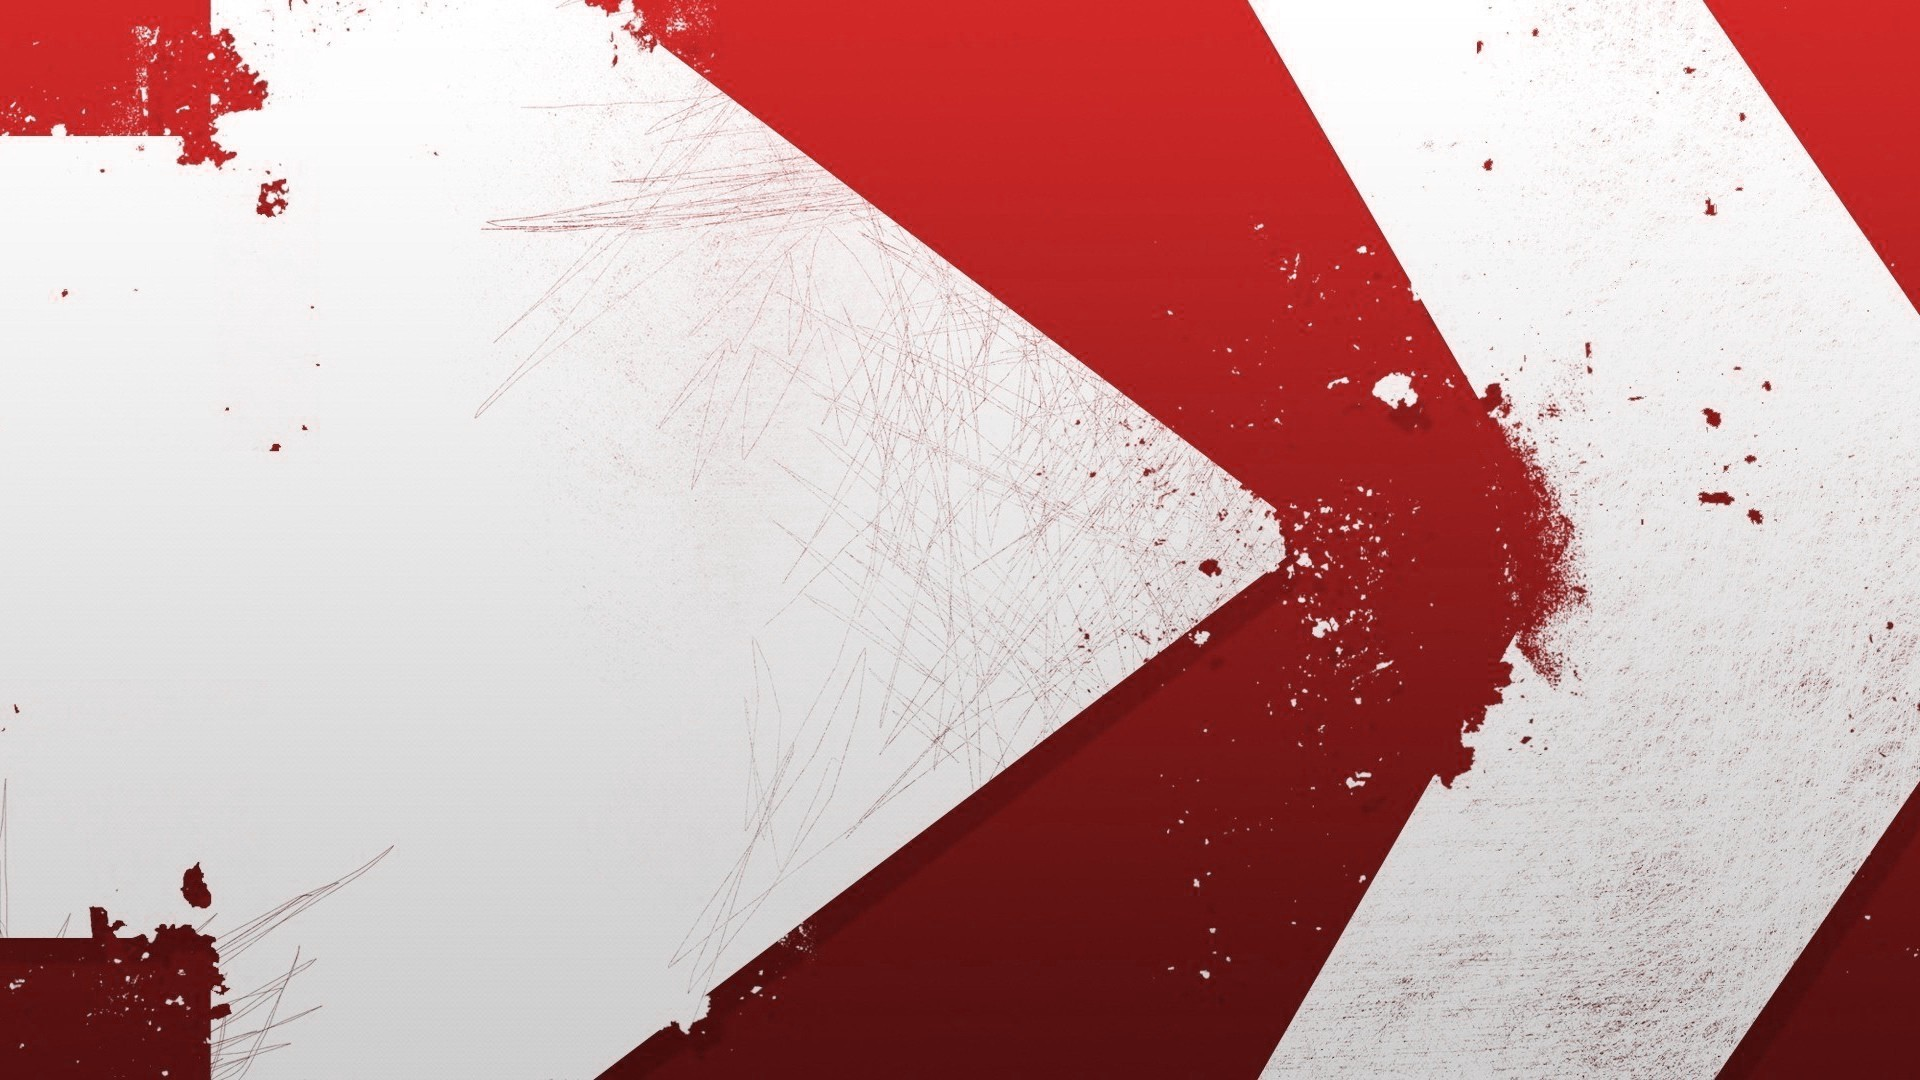 Download Abstract Red Paint Arrows HD Wallpapers 6299 Full Size 1920x1080